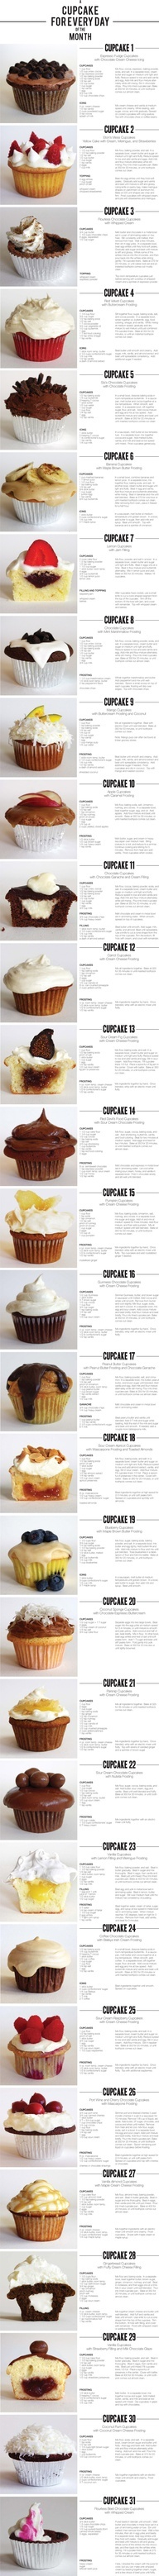 I HAVE to try this!!!! A cupcake for every day of the month!! :-D